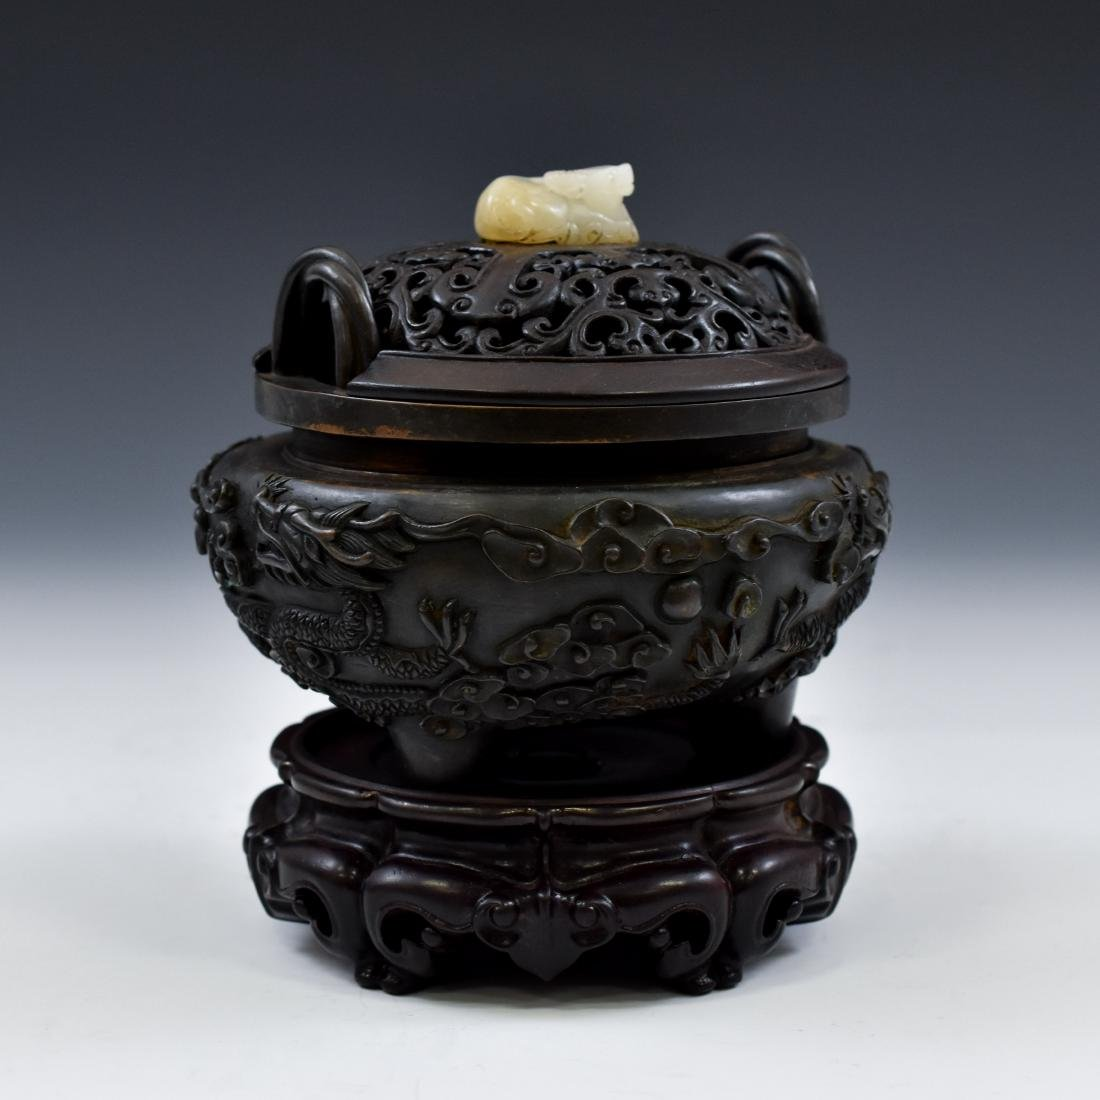 MING BRONZE DRAGON TRIPOD CENSER WITH JADE FINIAL - 3